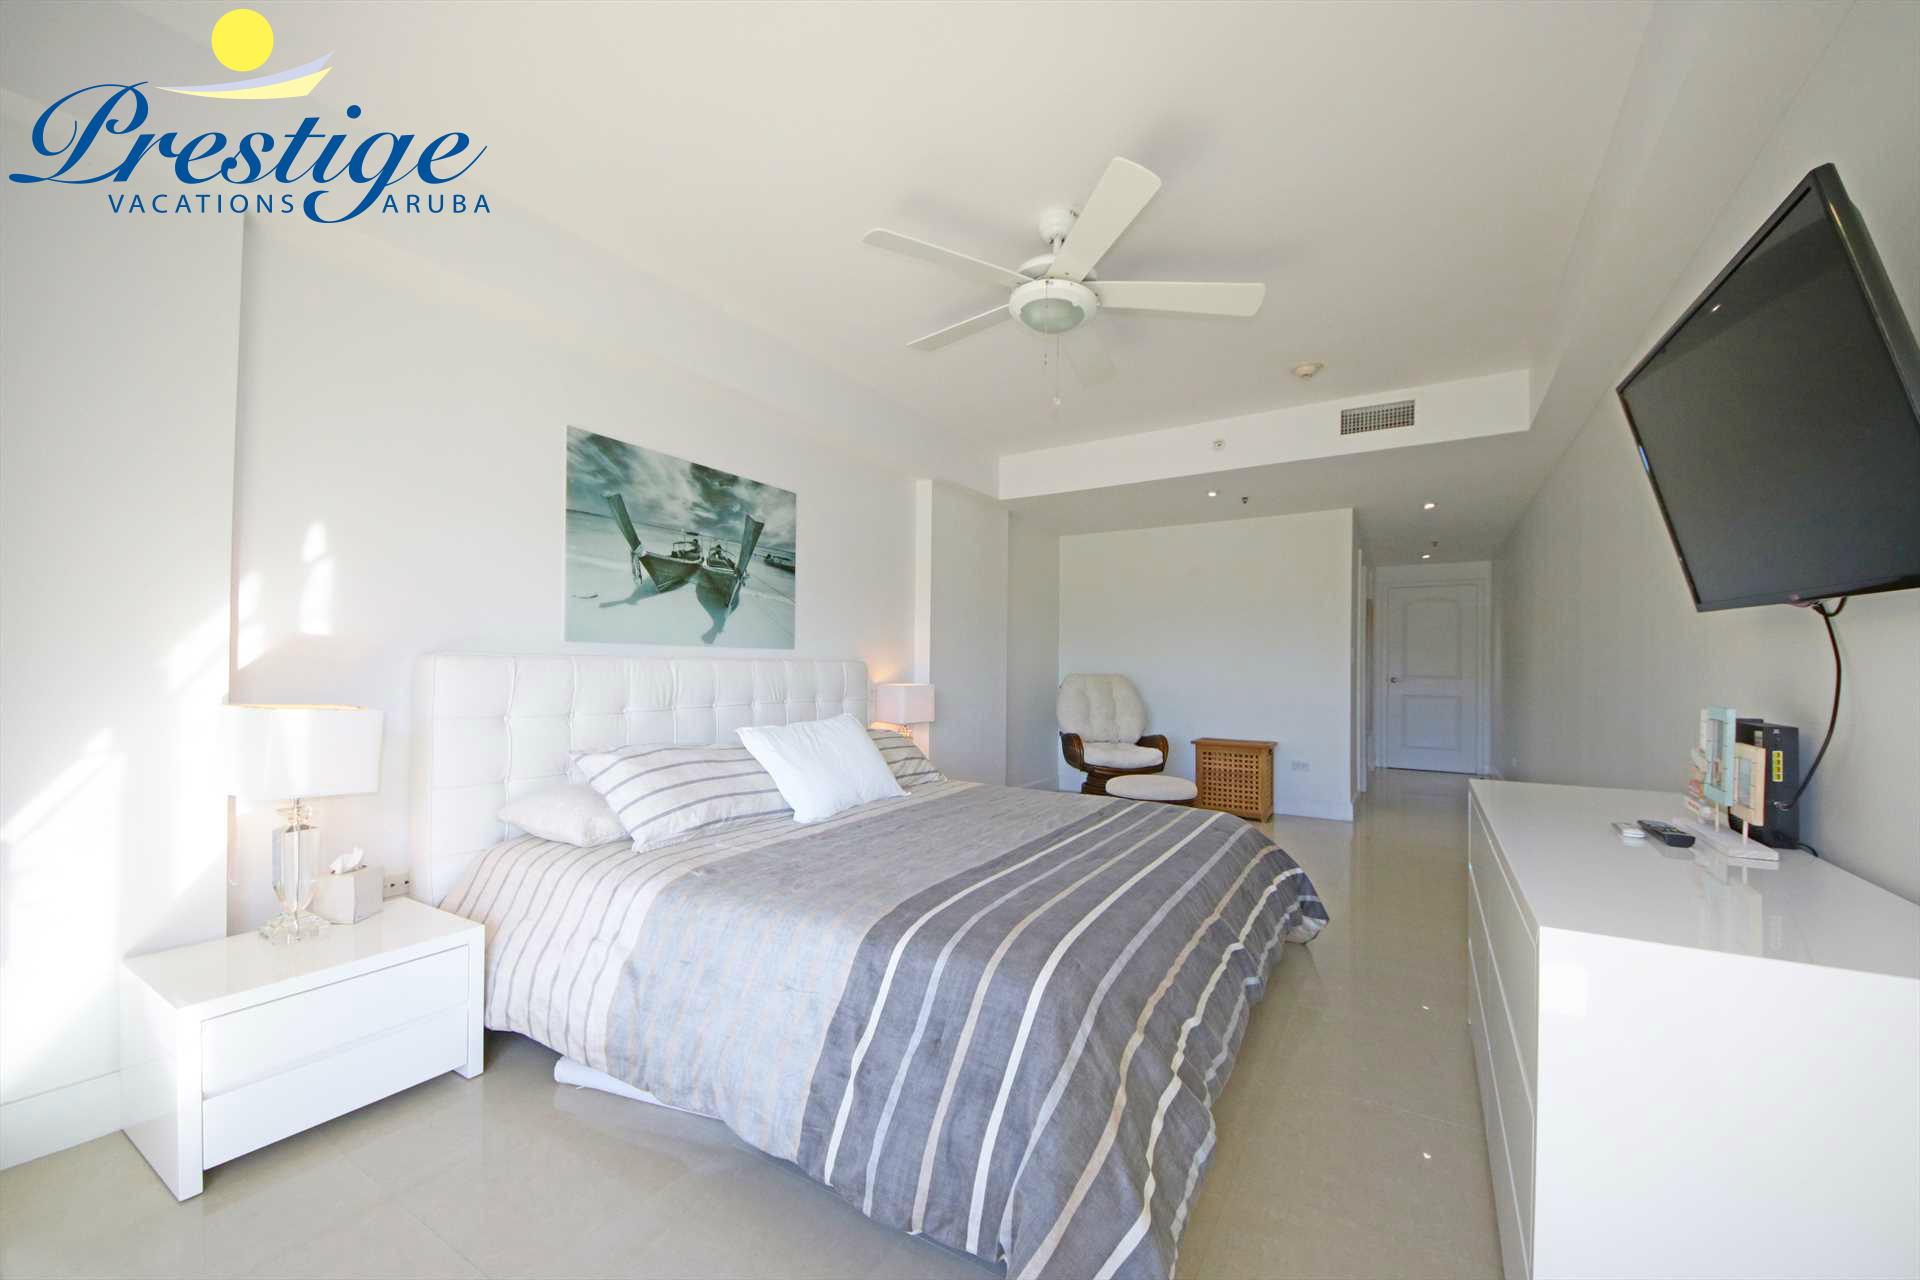 Master bedroom with TV and a swivel chair